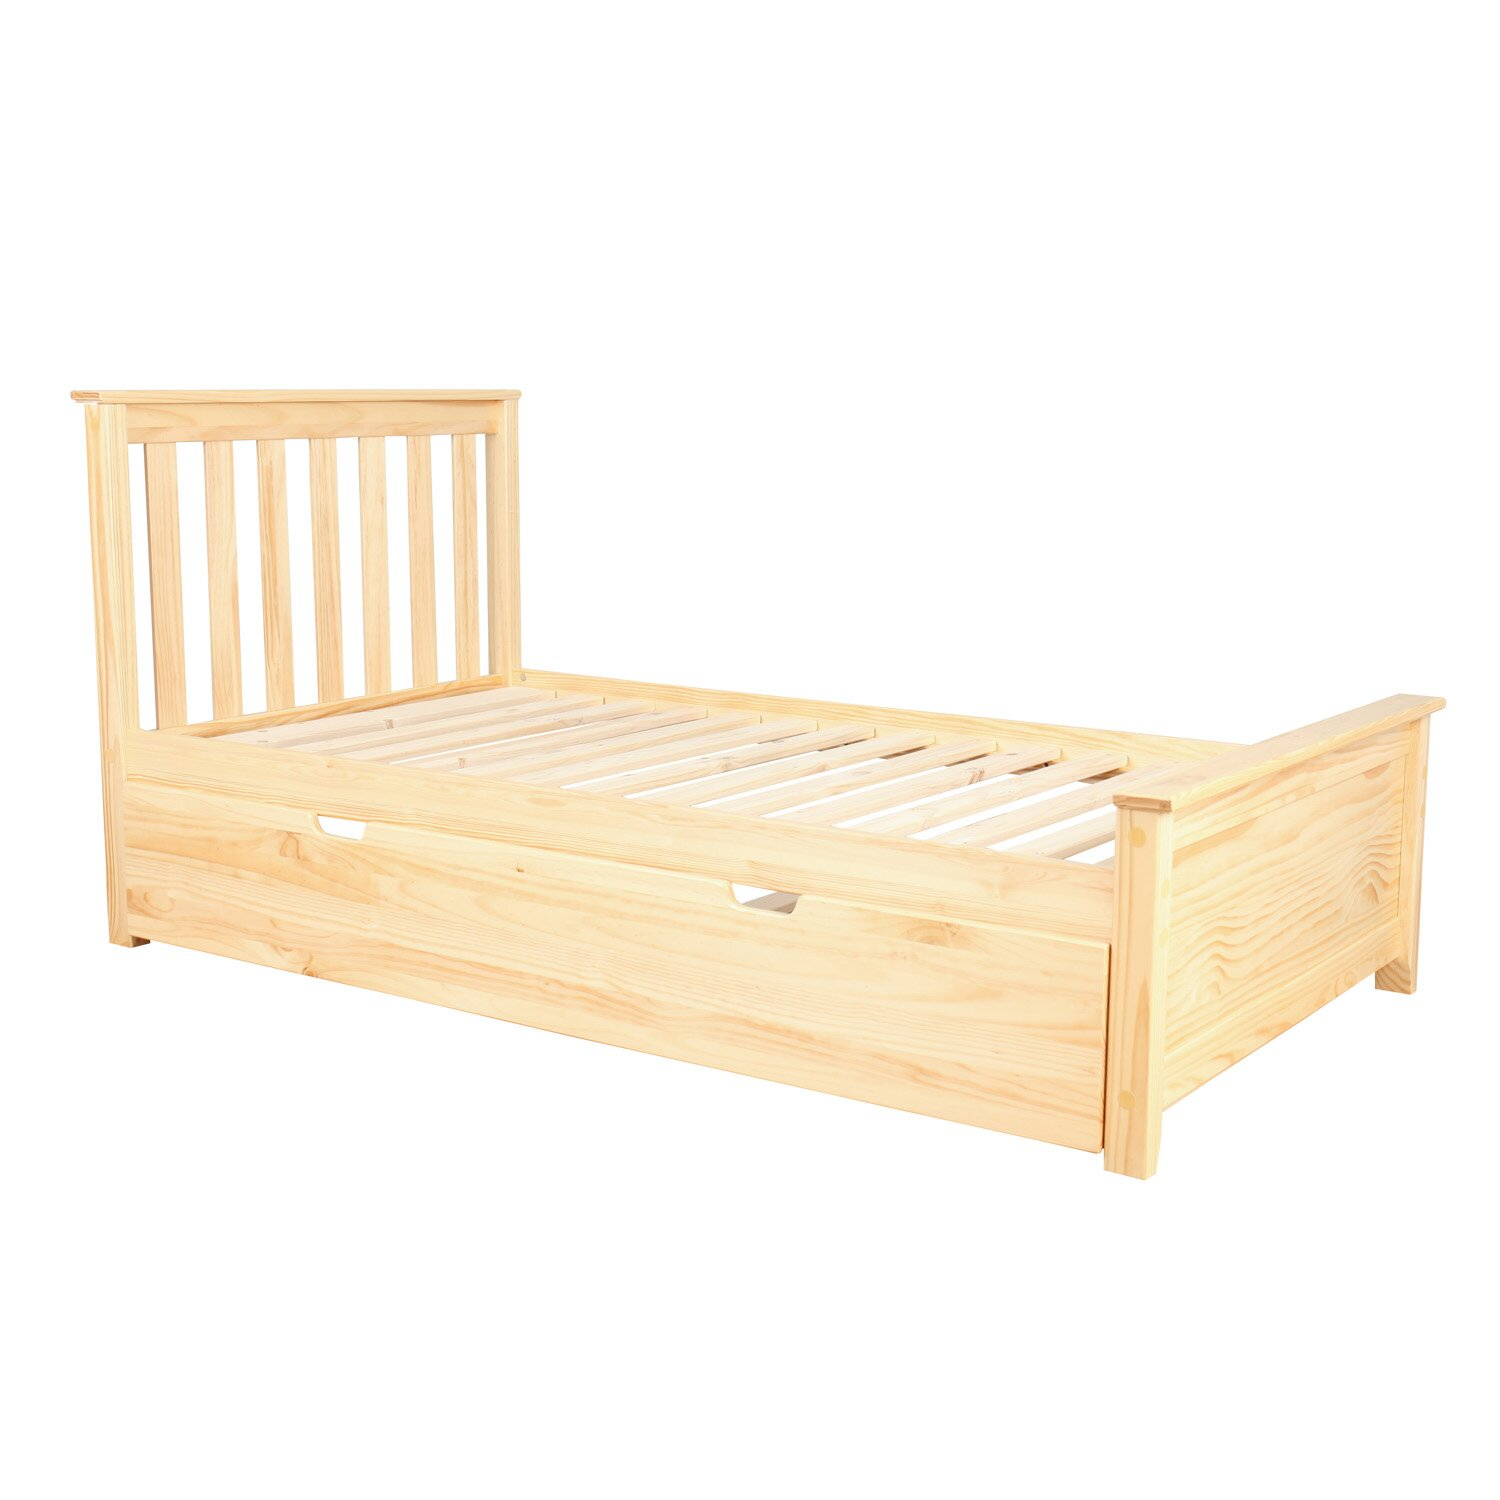 max lily solid wood twin platform bed with trundle frame